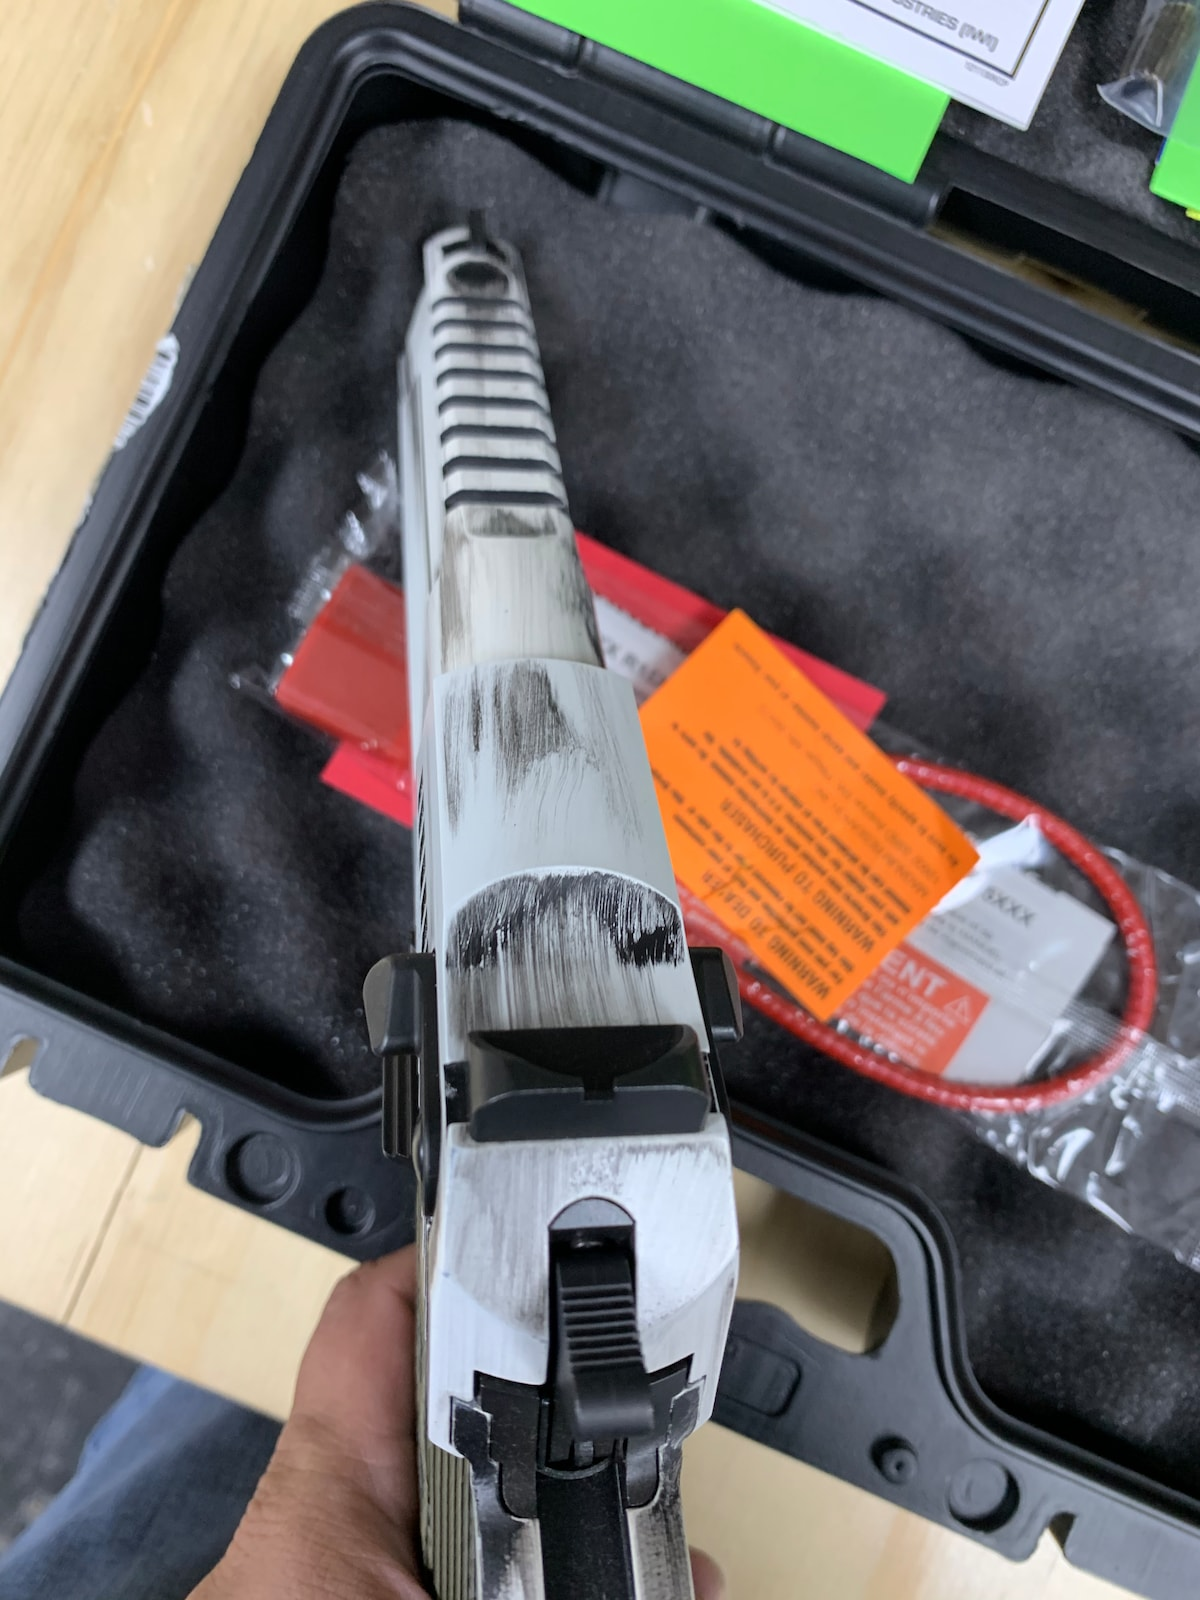 MAGNUM RESEARCH, INC. DESERT EAGLE 44 MAG